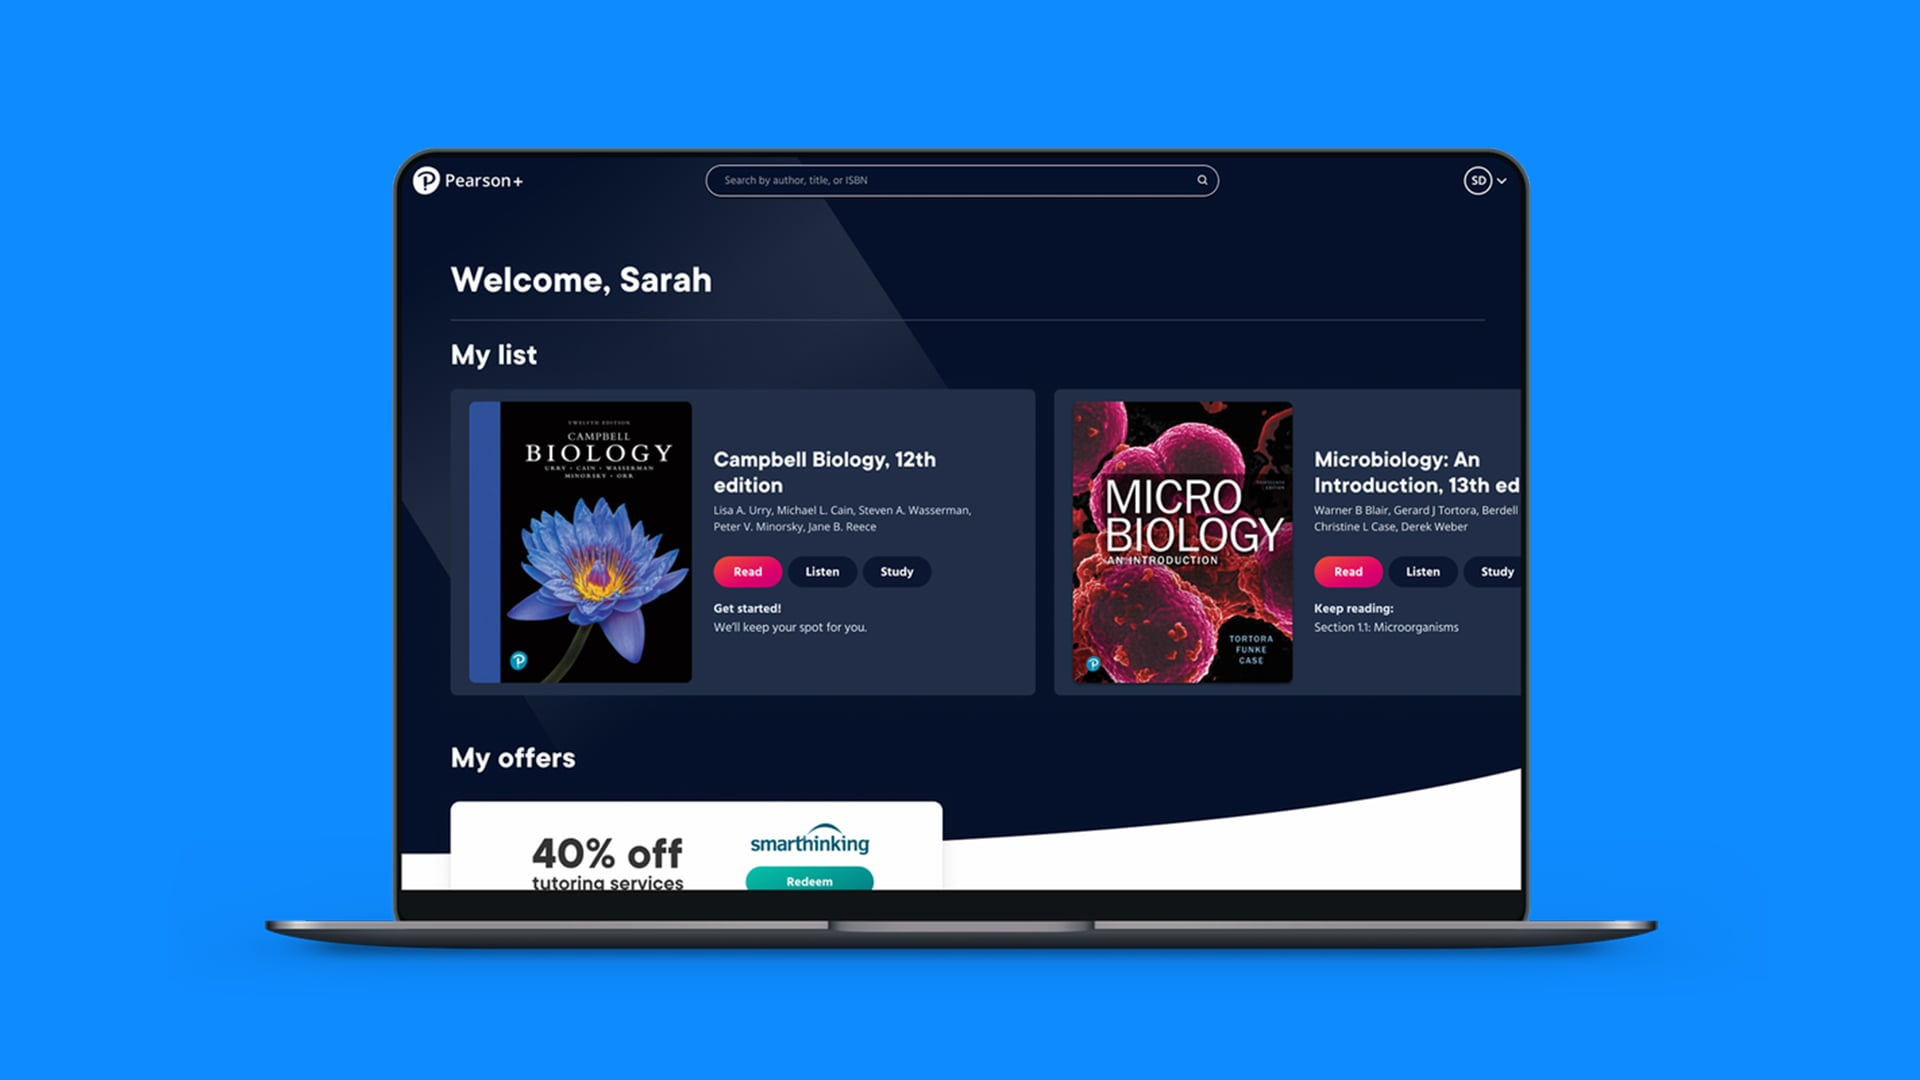 Pearson Plus Is the New Subscription-Based Service for Textbooks